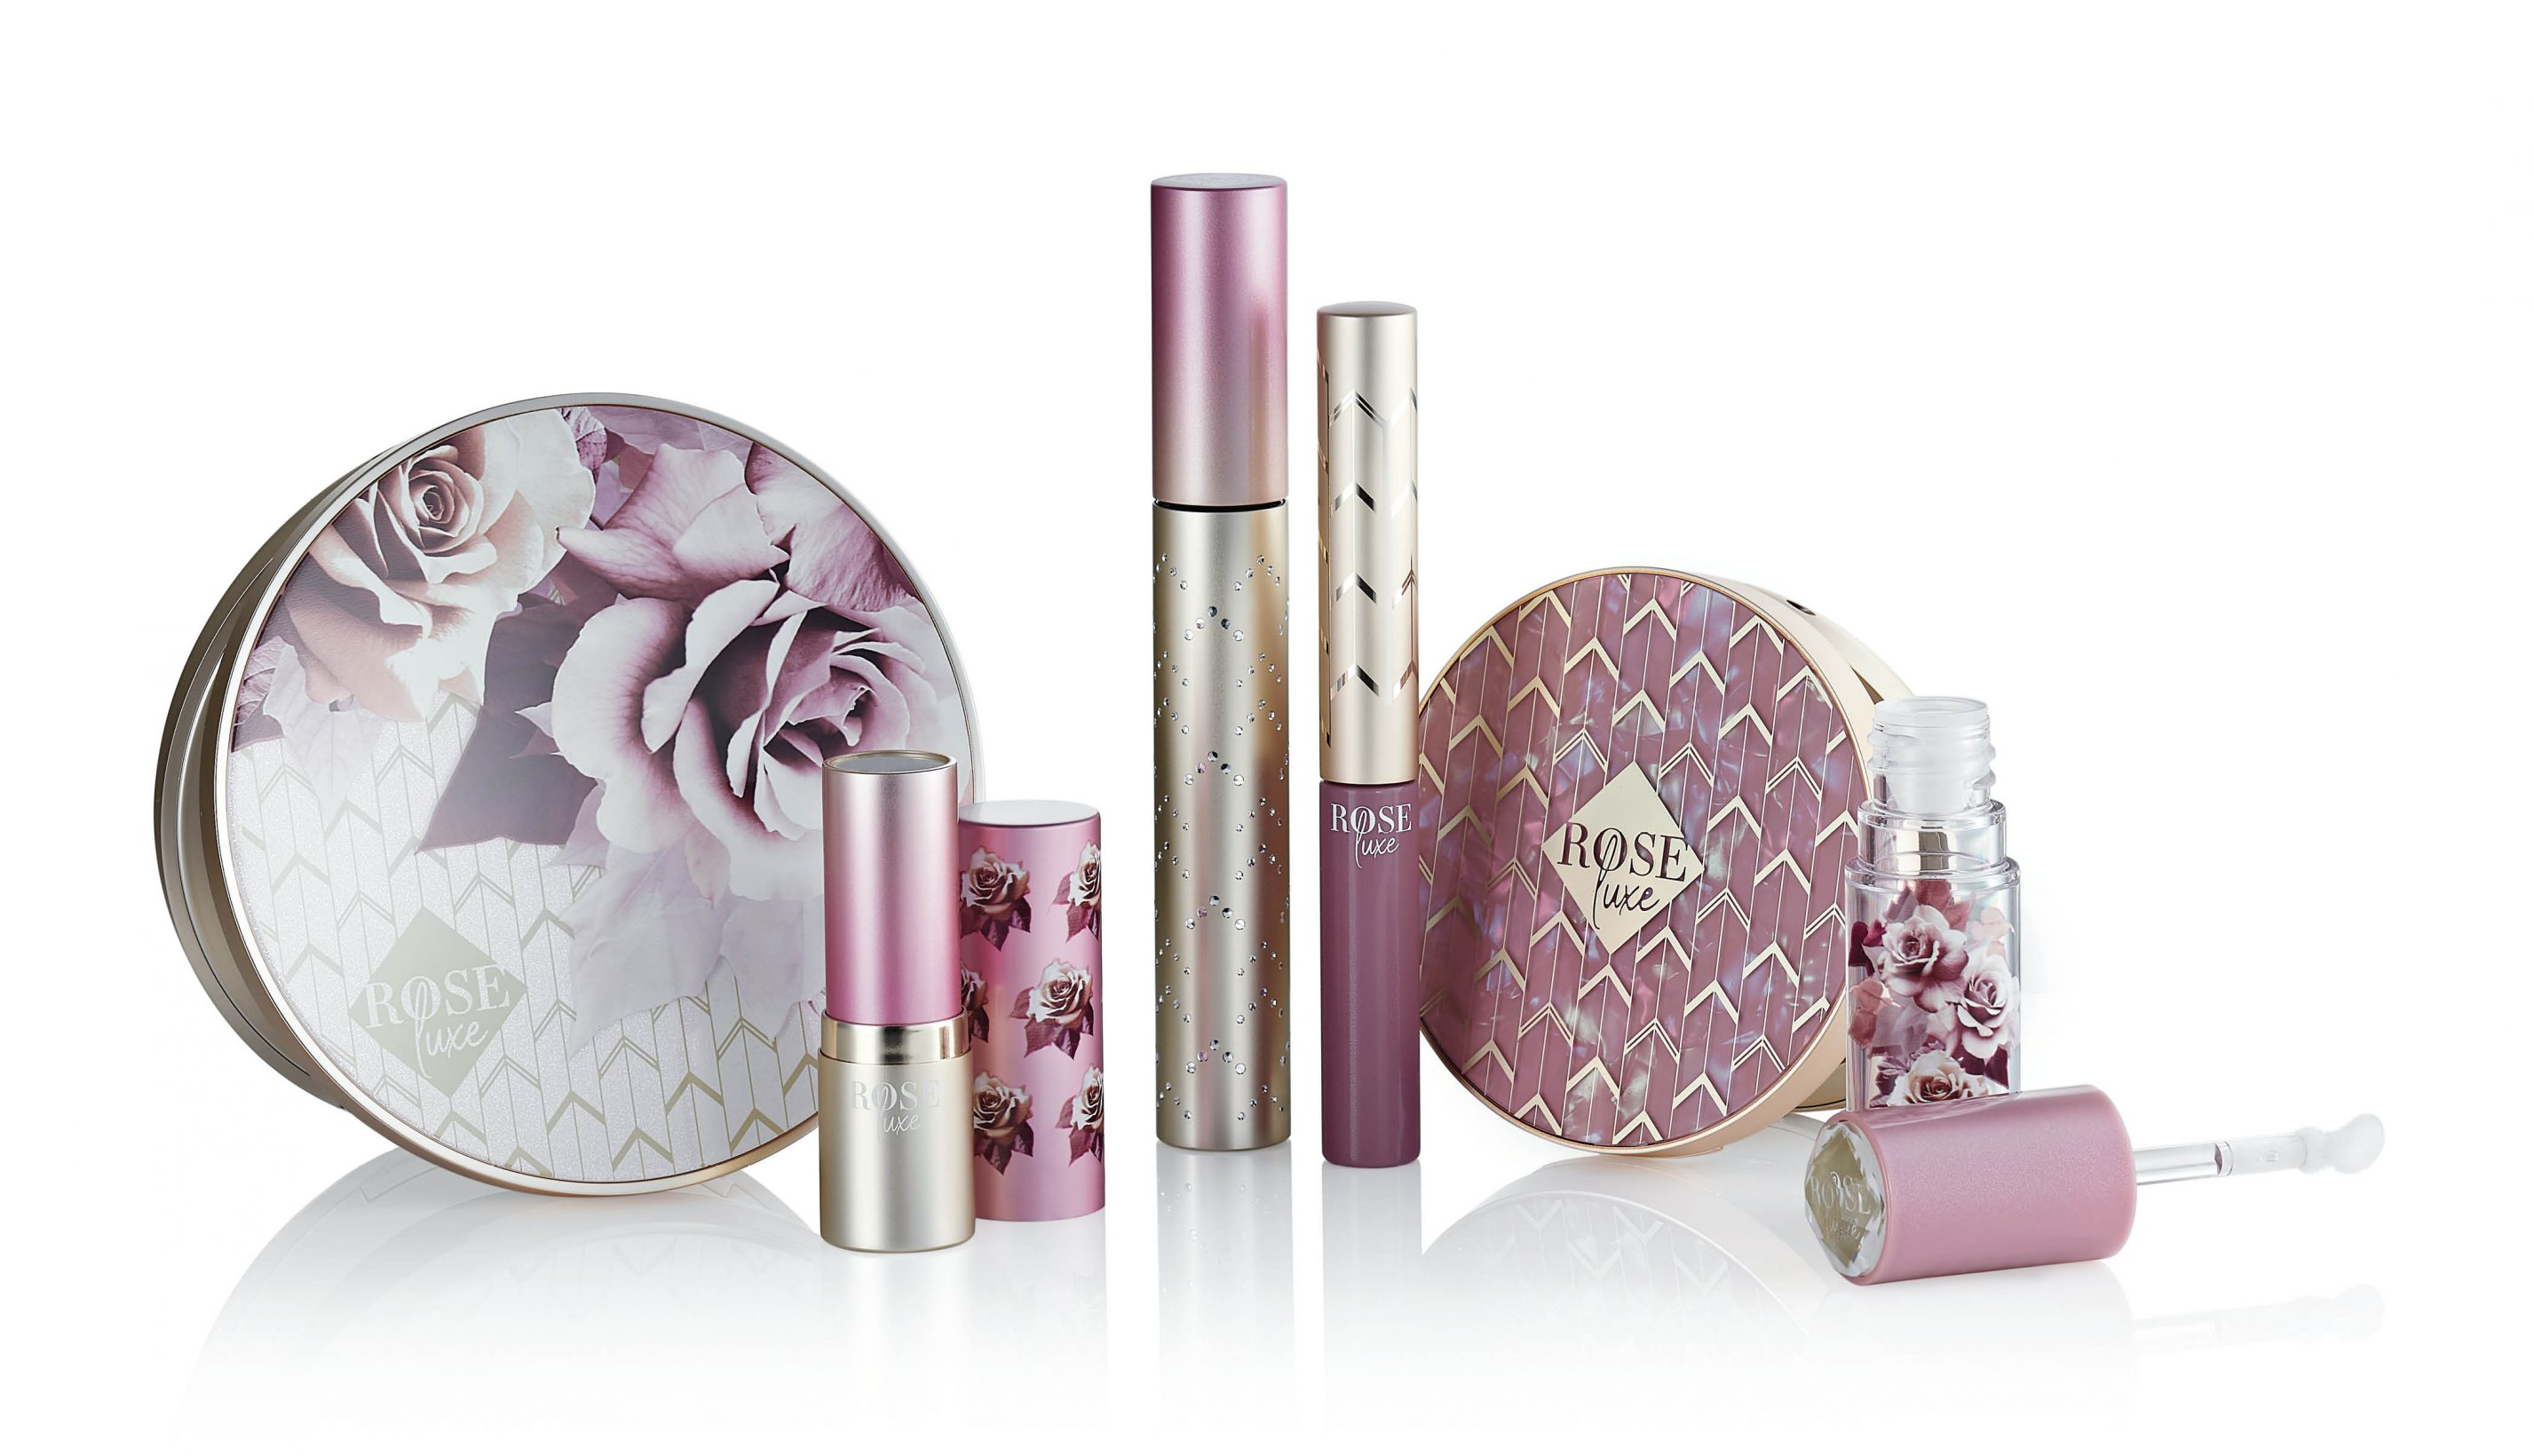 rose luxe beauty packaging by hcp